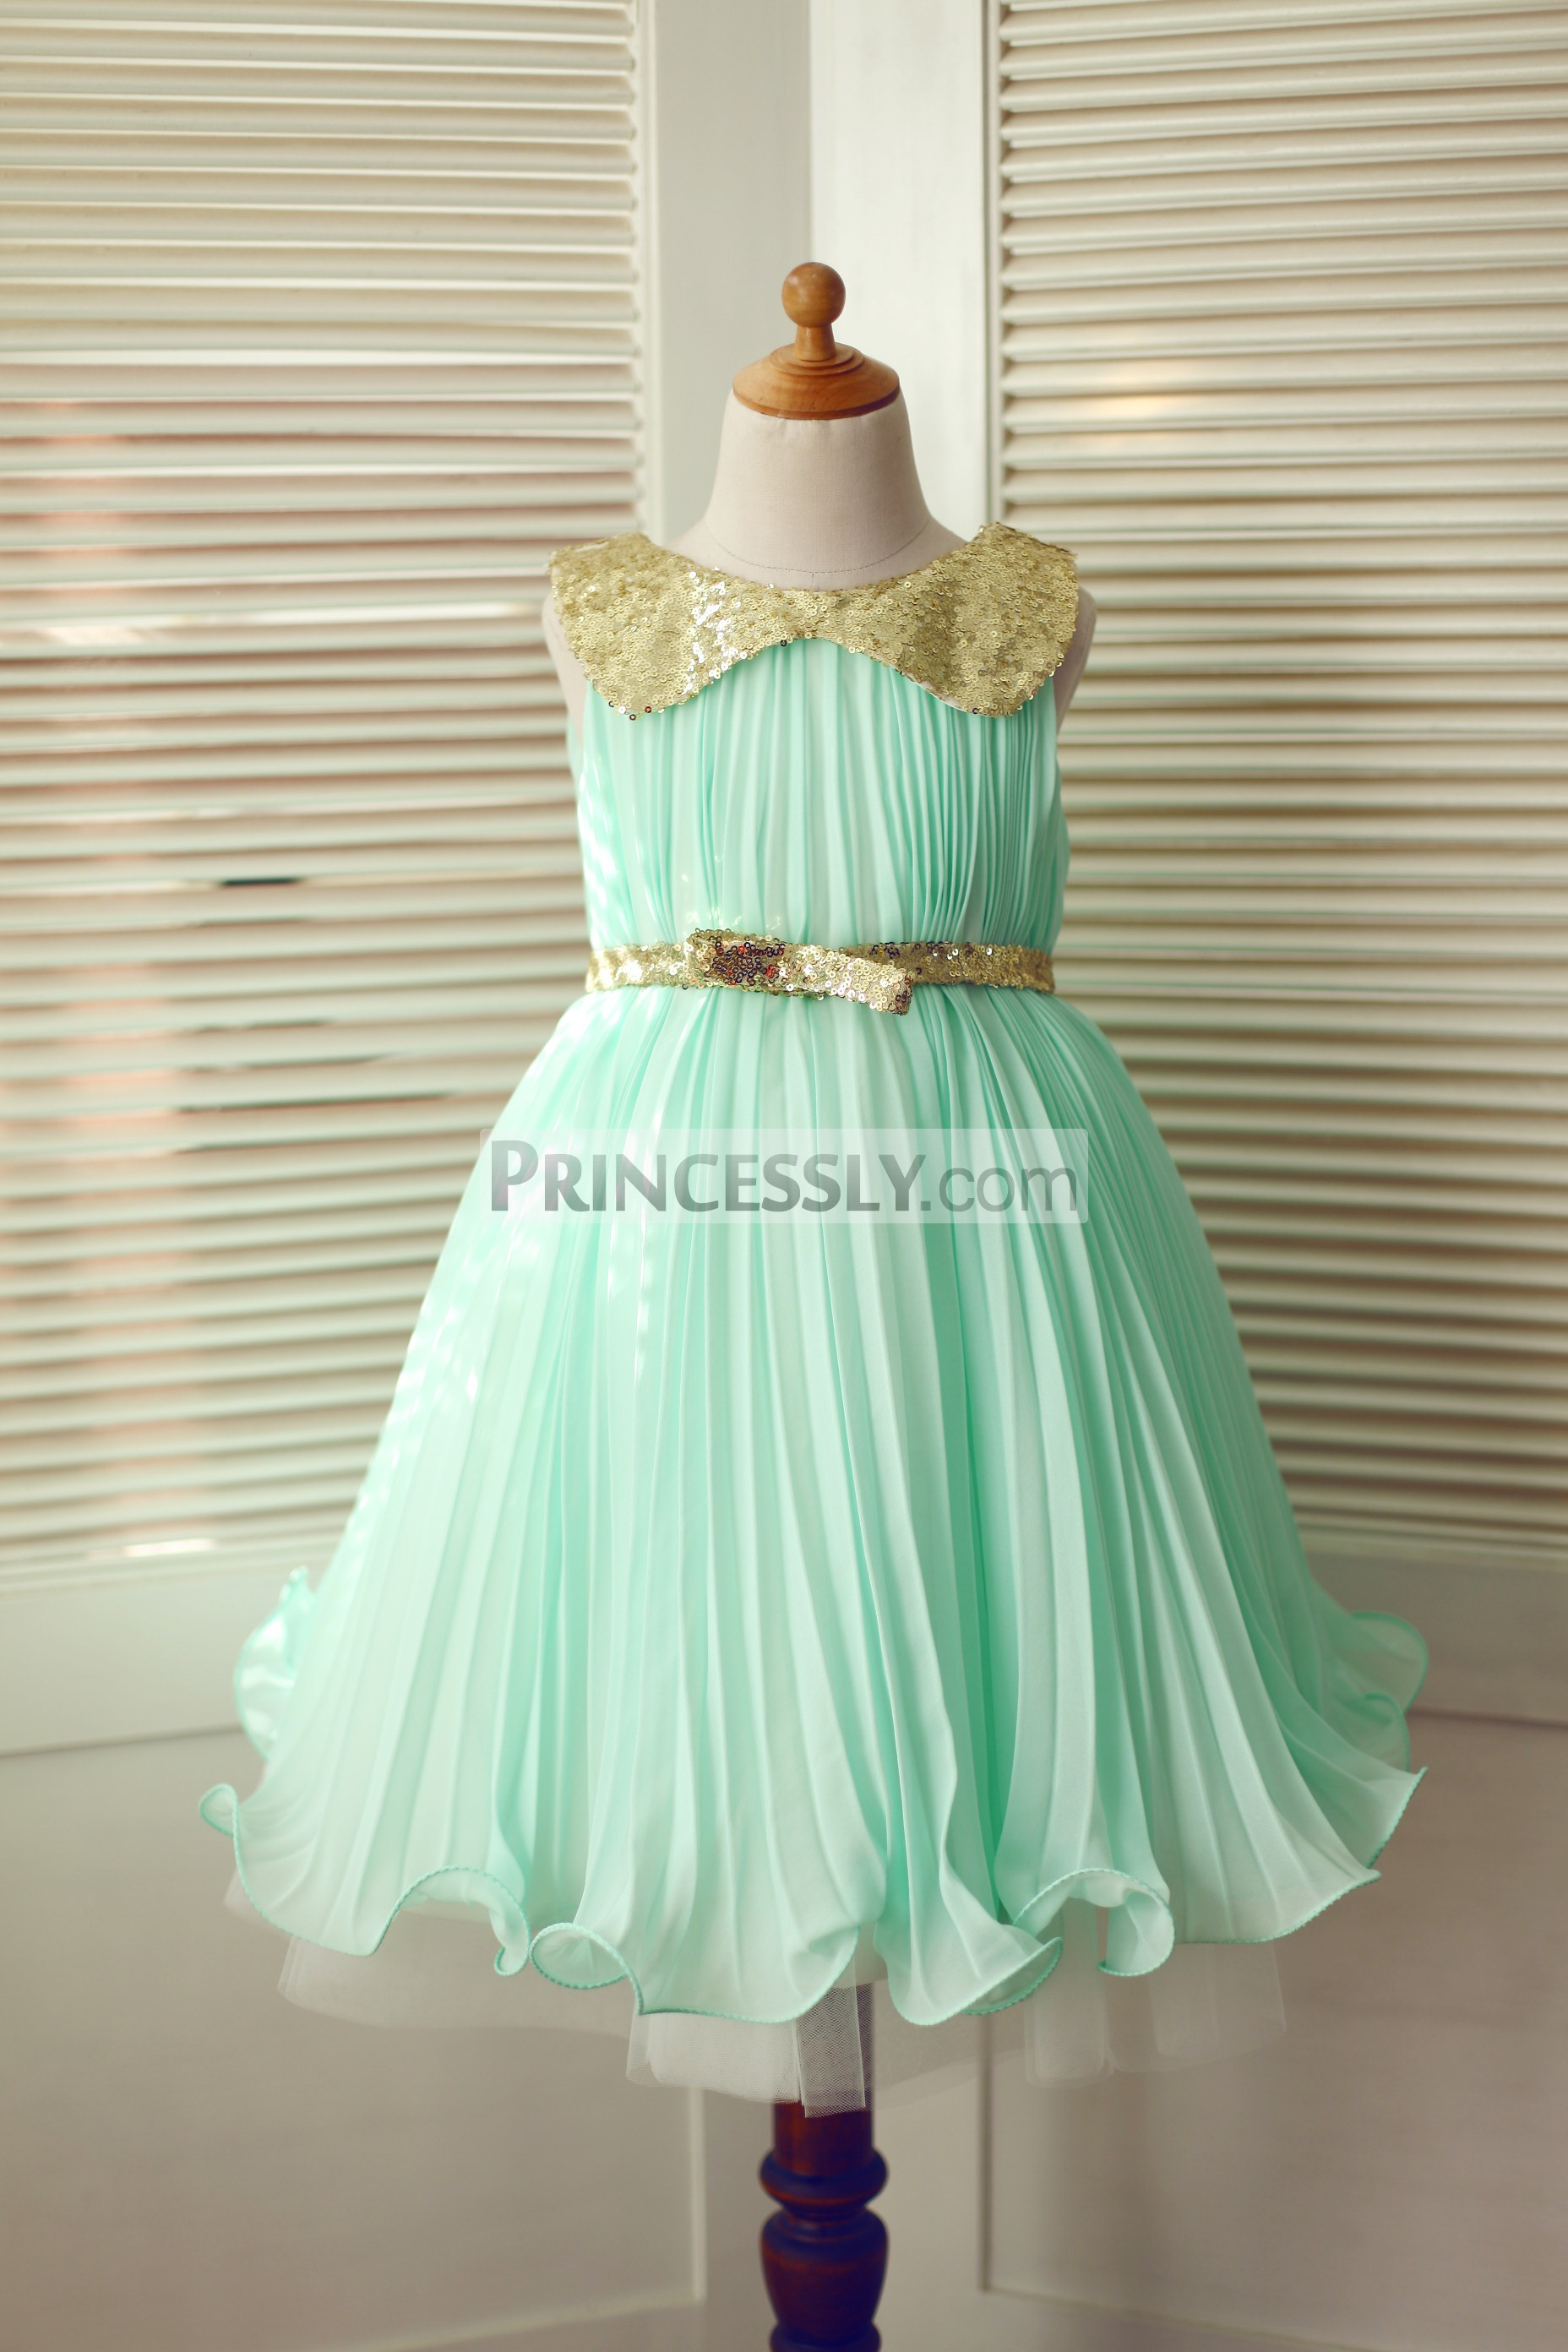 41249f40fa29 Mint Green Chiffon Gold Sequin Peter Pan Collar & Belt Flower Girl ...